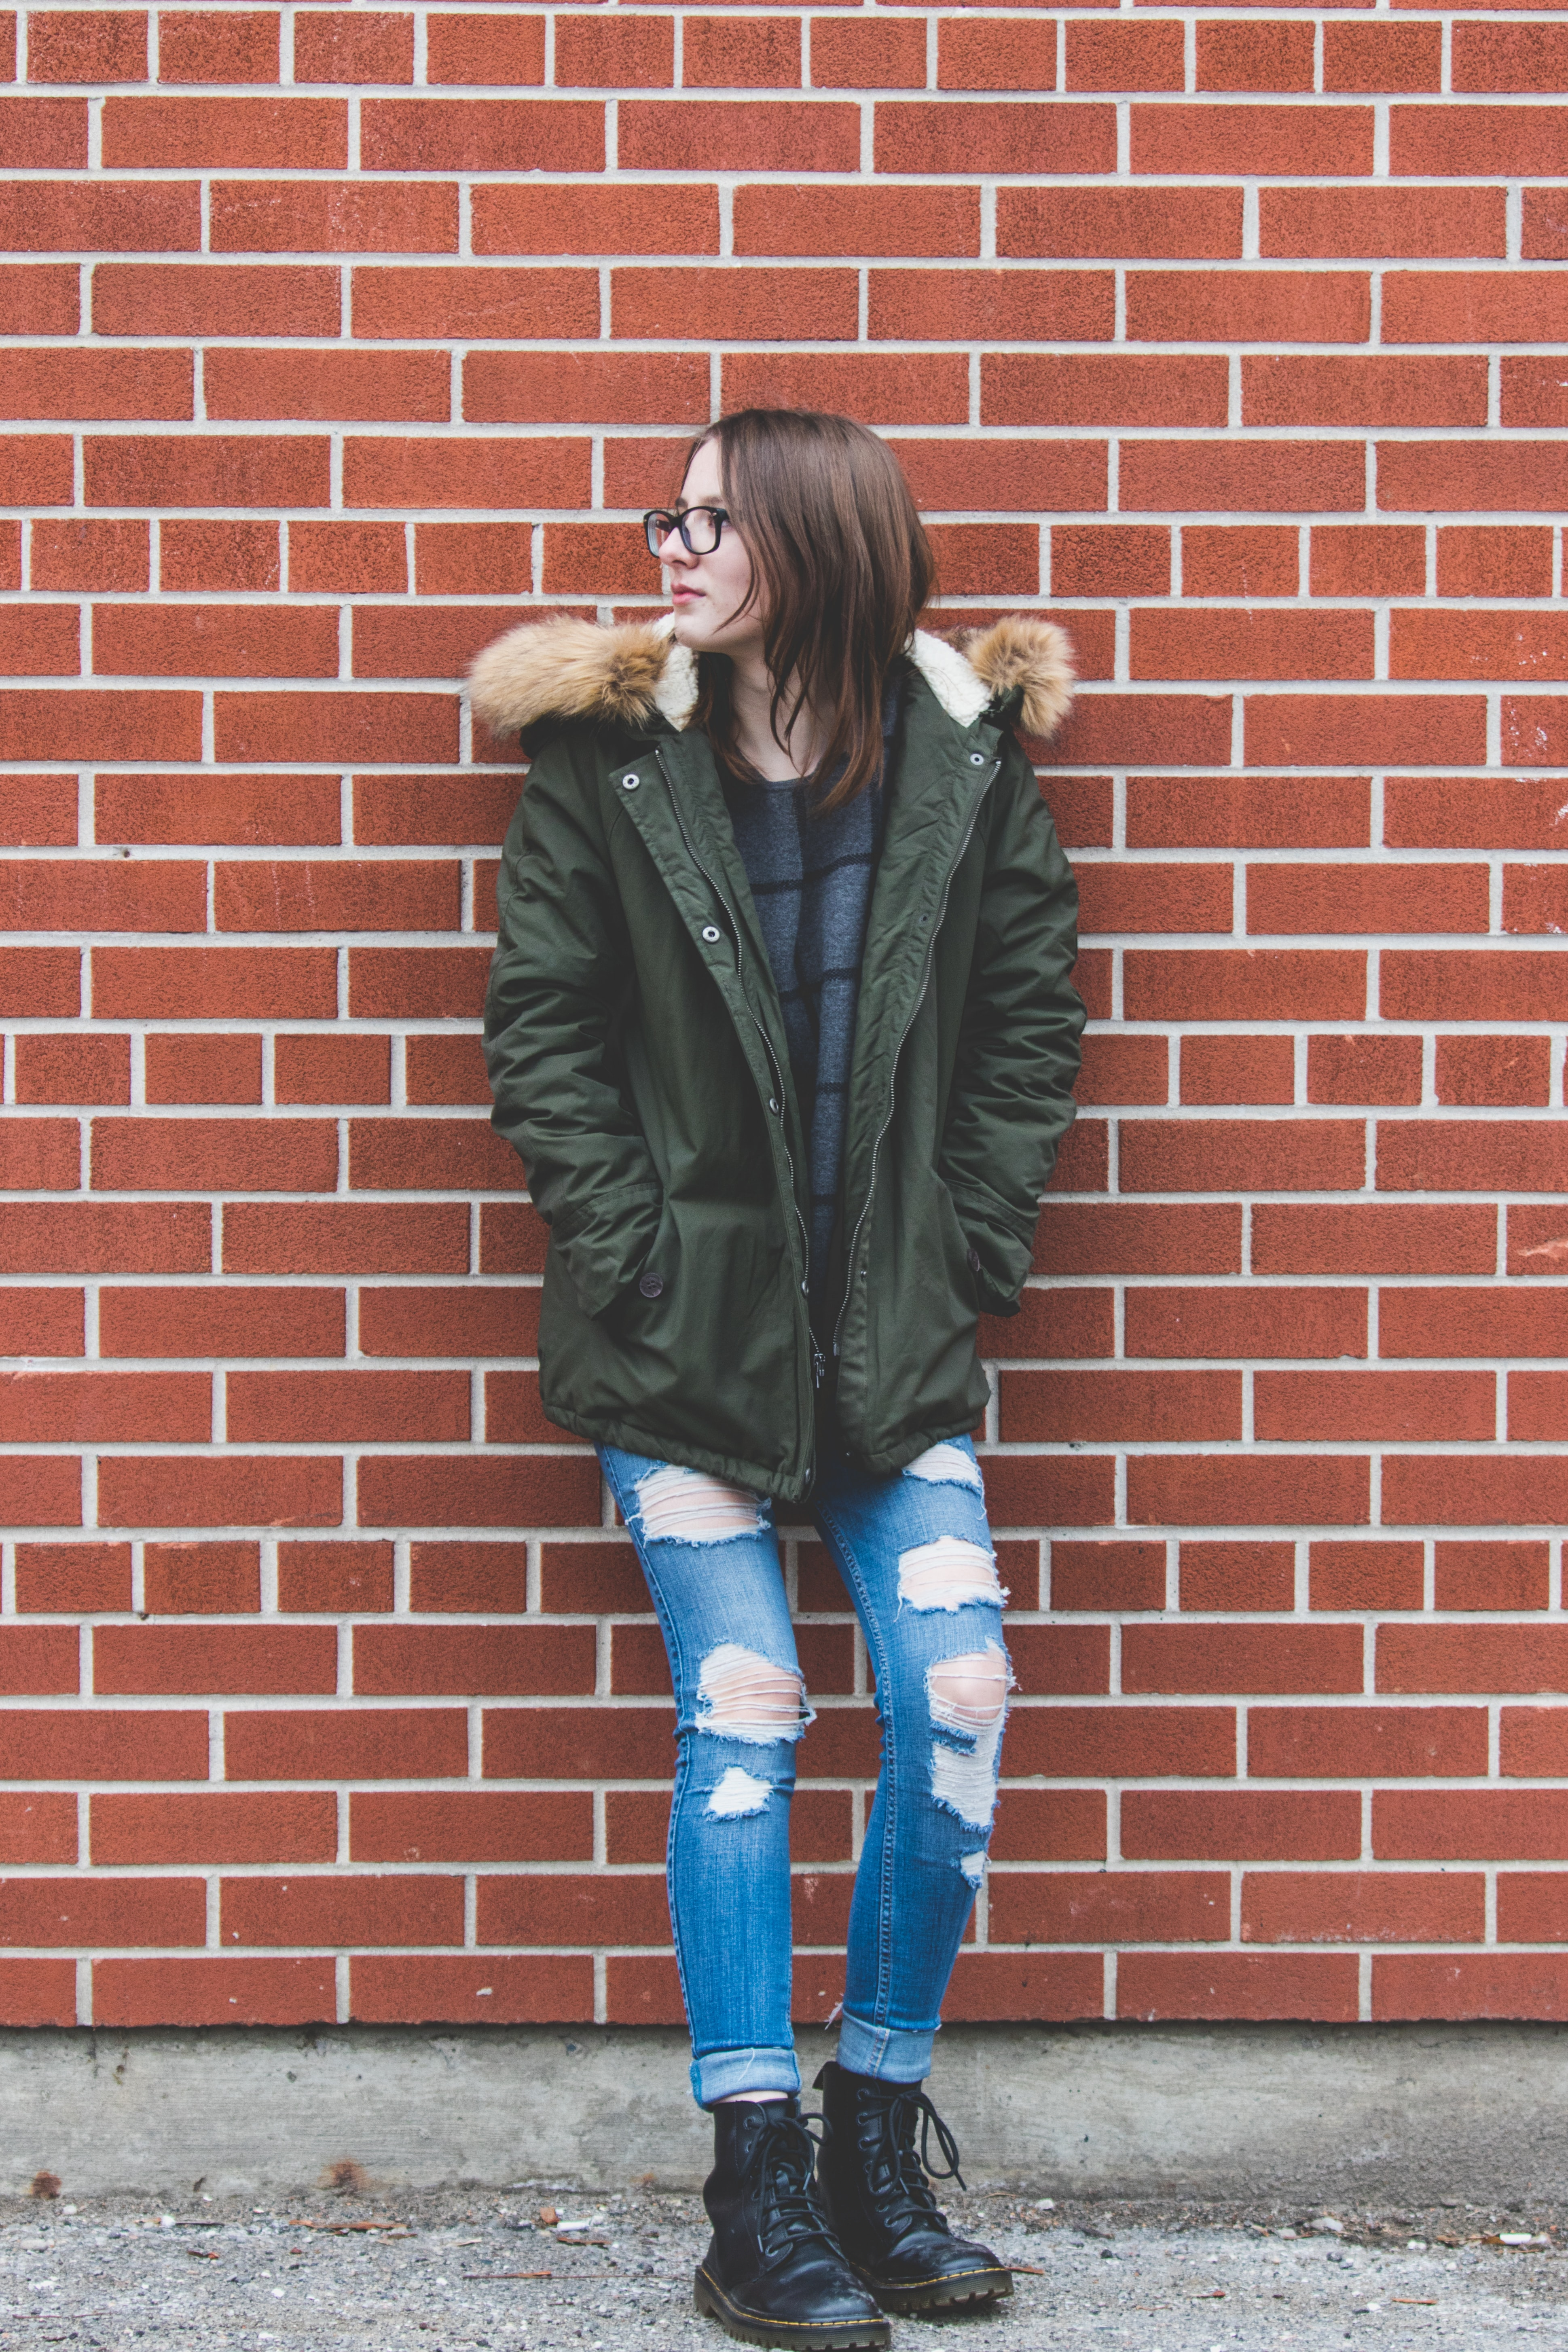 woman in green parka, boyfriend jeans, and black boots leaning on brick wall